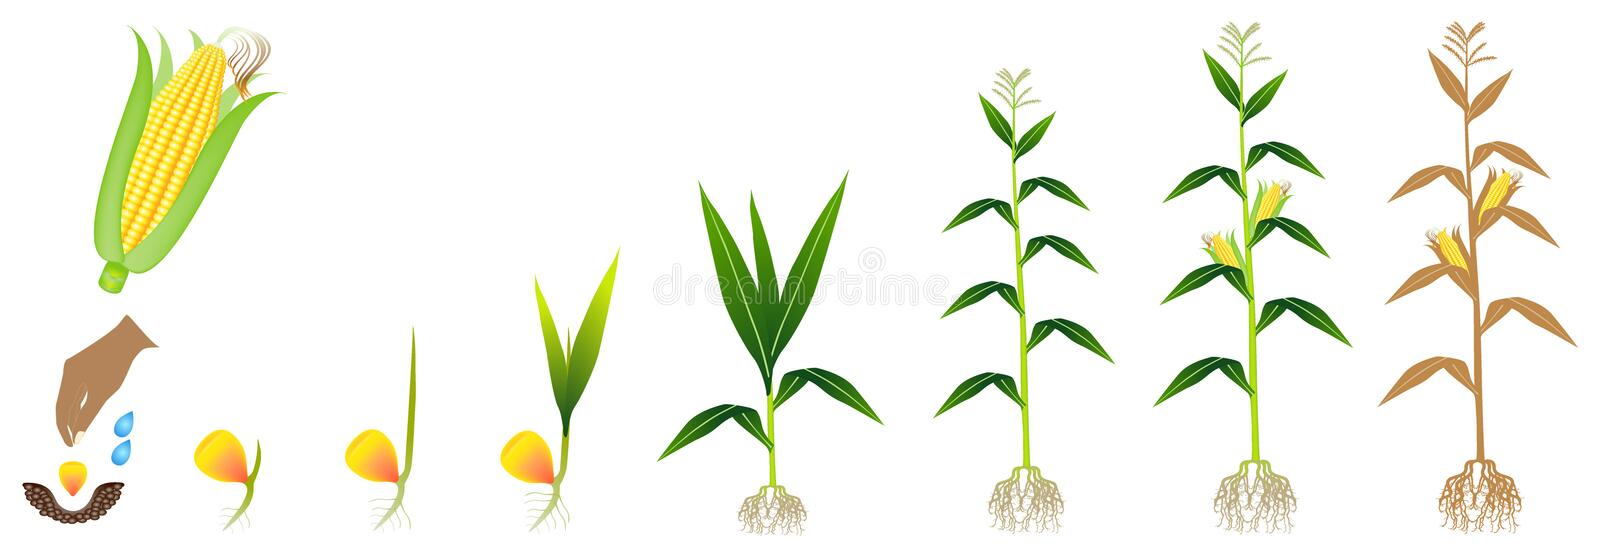 Cycle of growth of a corn plant on a white background. stock photo